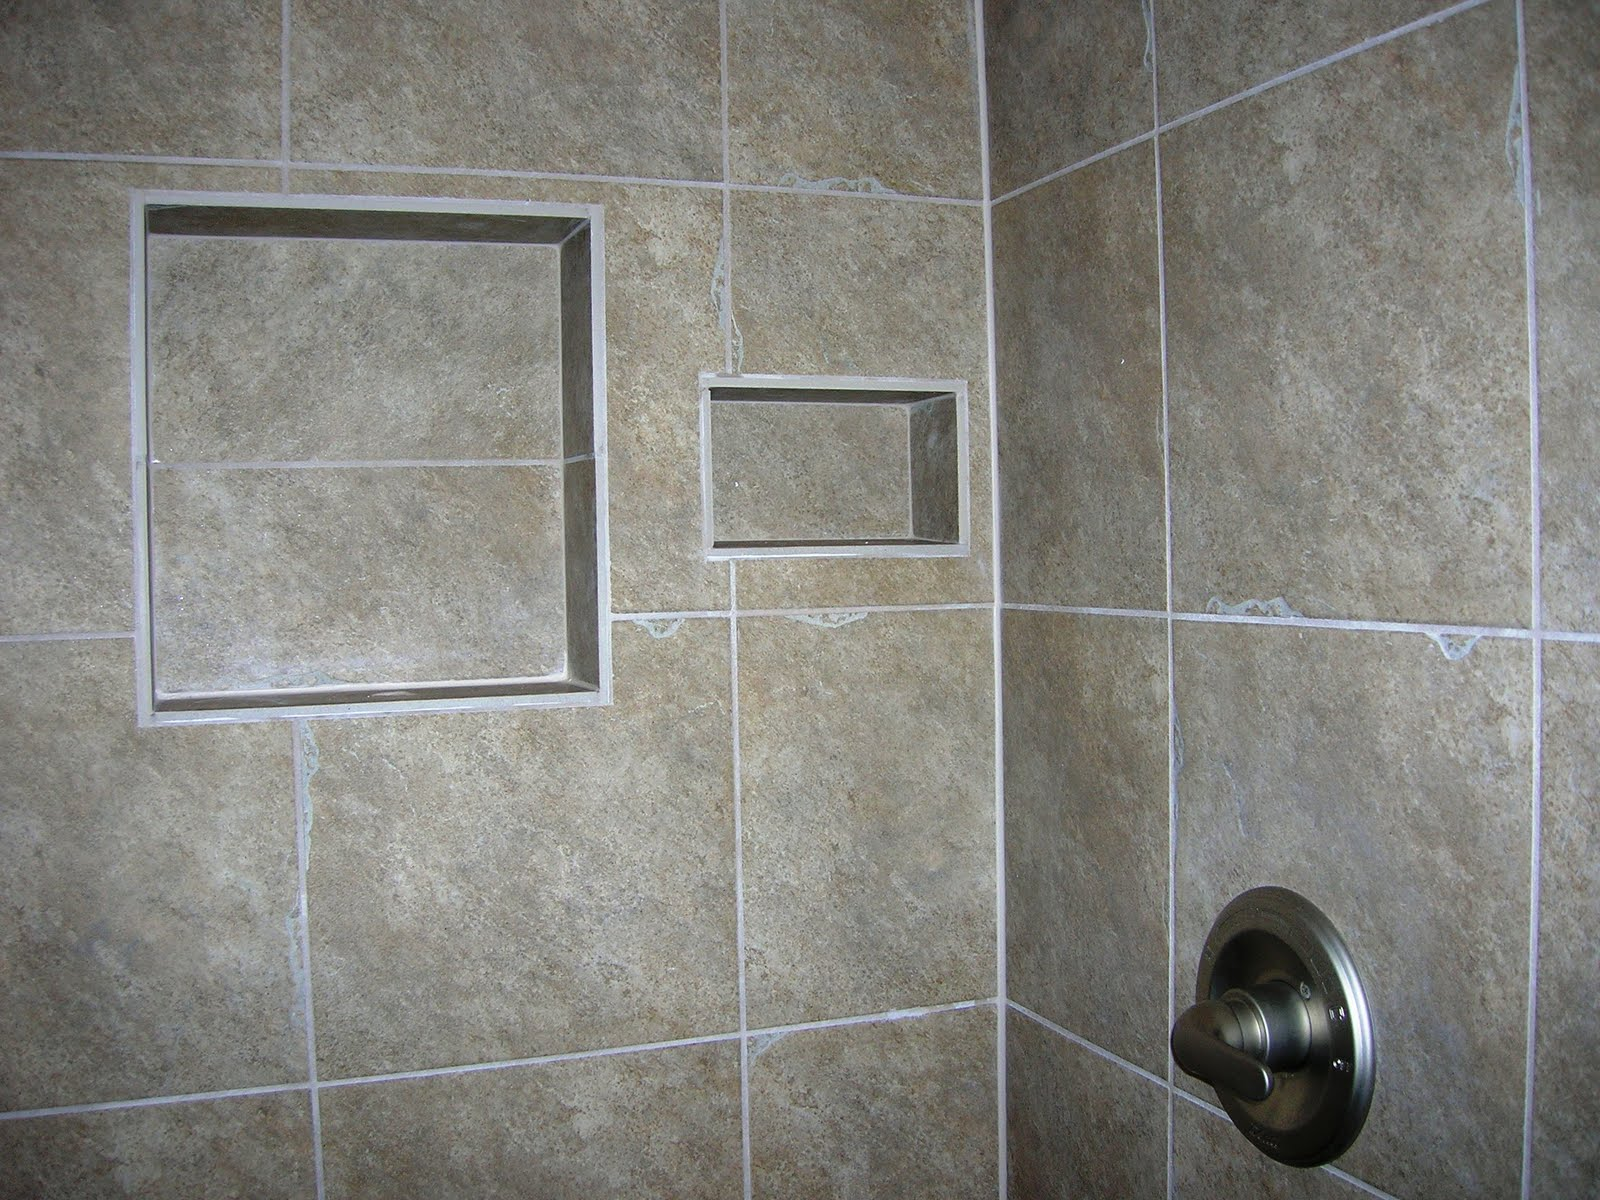 bathroom-bathroom-tile-shower-ideas-pictures-tile-shower-ideas-tile-installation-porcelain-tile-astounding-small-tile-shower-ideas-vintage-bathroom-tile-patterns-ideas